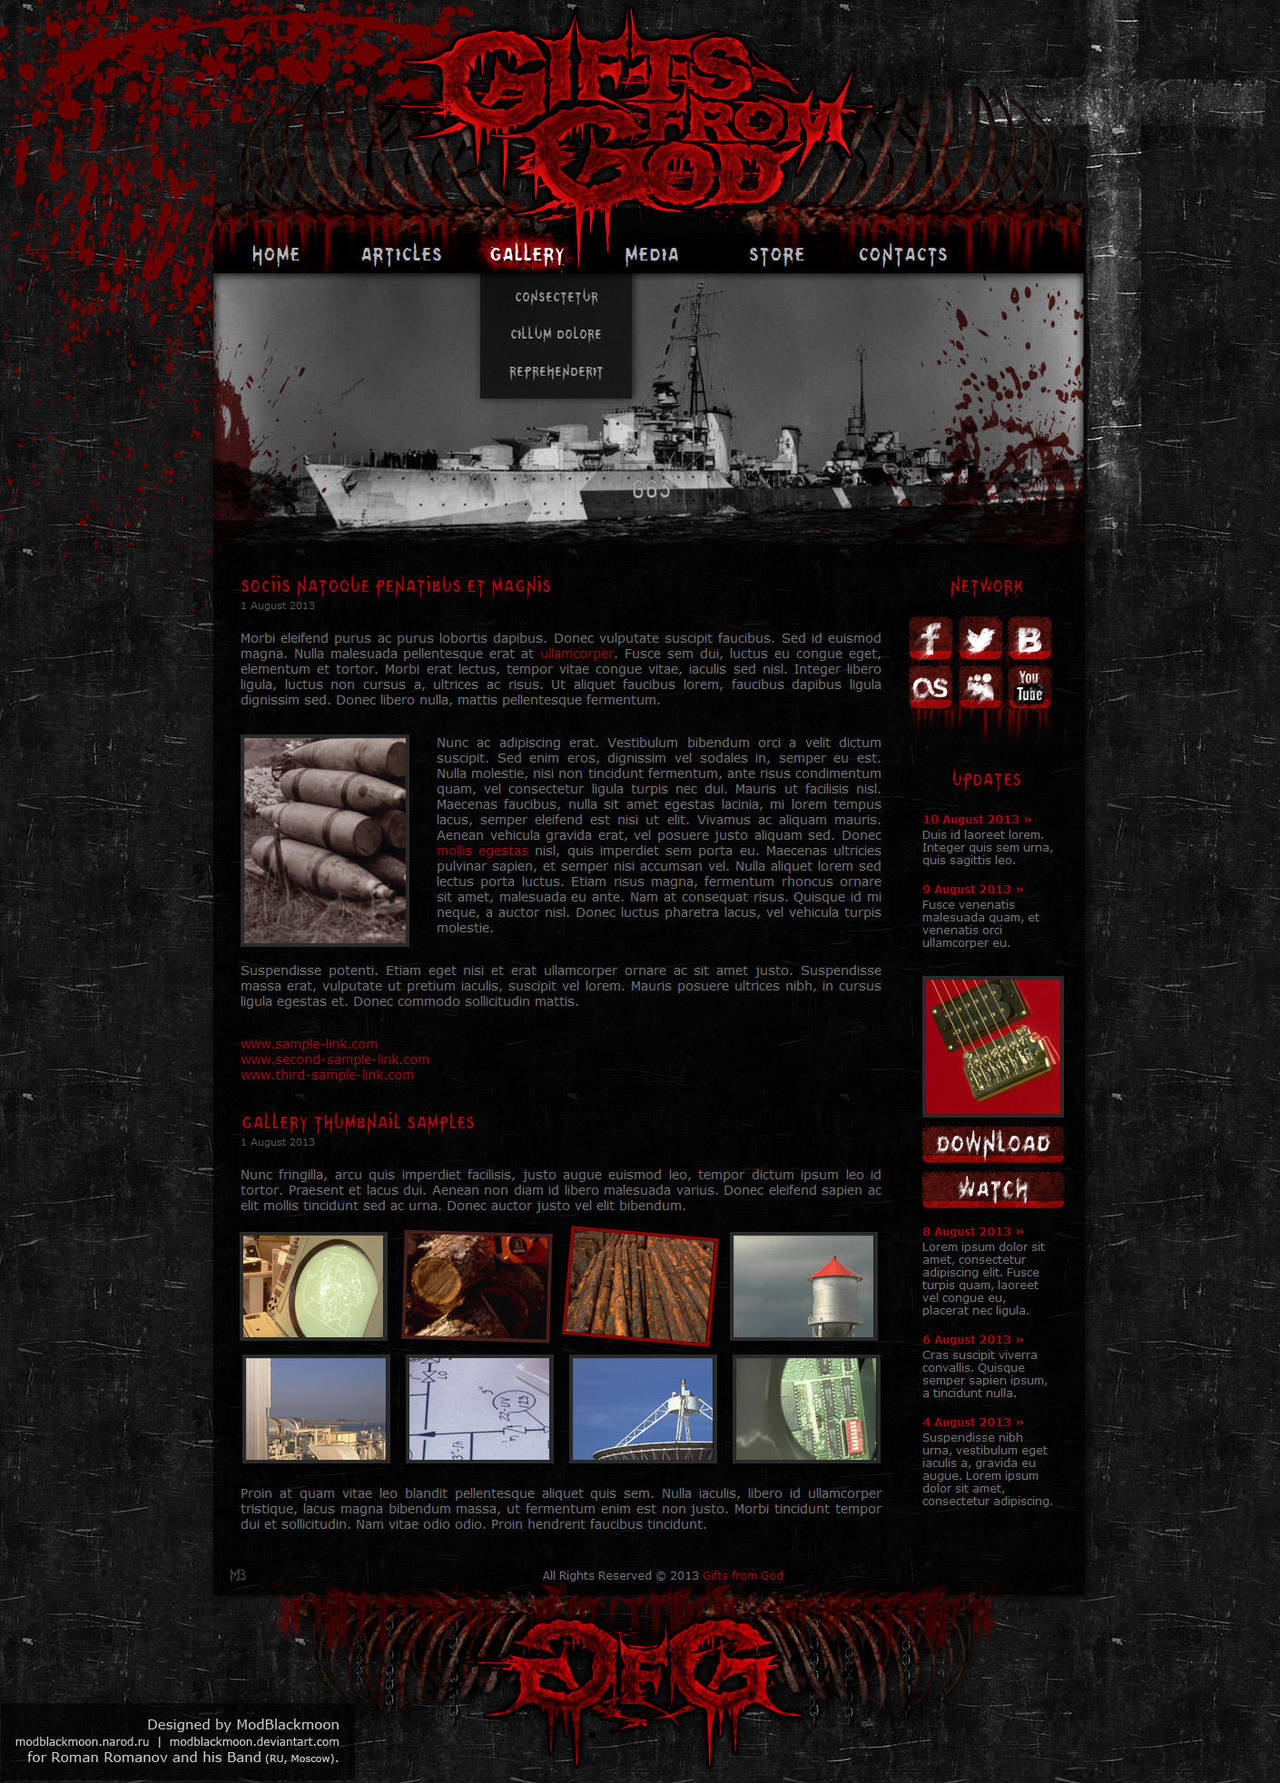 Gifts from God Website by modblackmoon